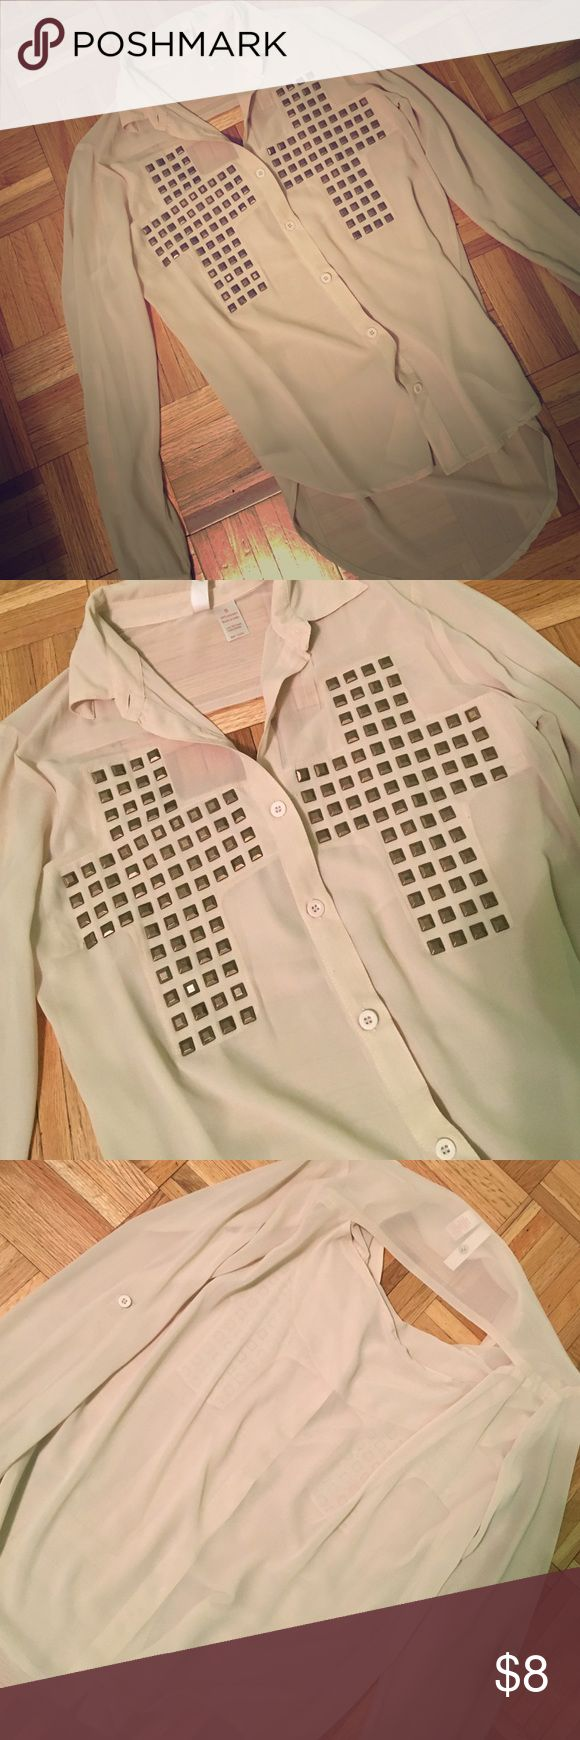 Cross beige button down shirt Never worn. Beige long sleeve button down with two crosses detailed in the front. Back has an opening on the upper back as pictured. A little see through so might need to wear a tank underneath. Buttons on sleeves. Tops Button Down Shirts